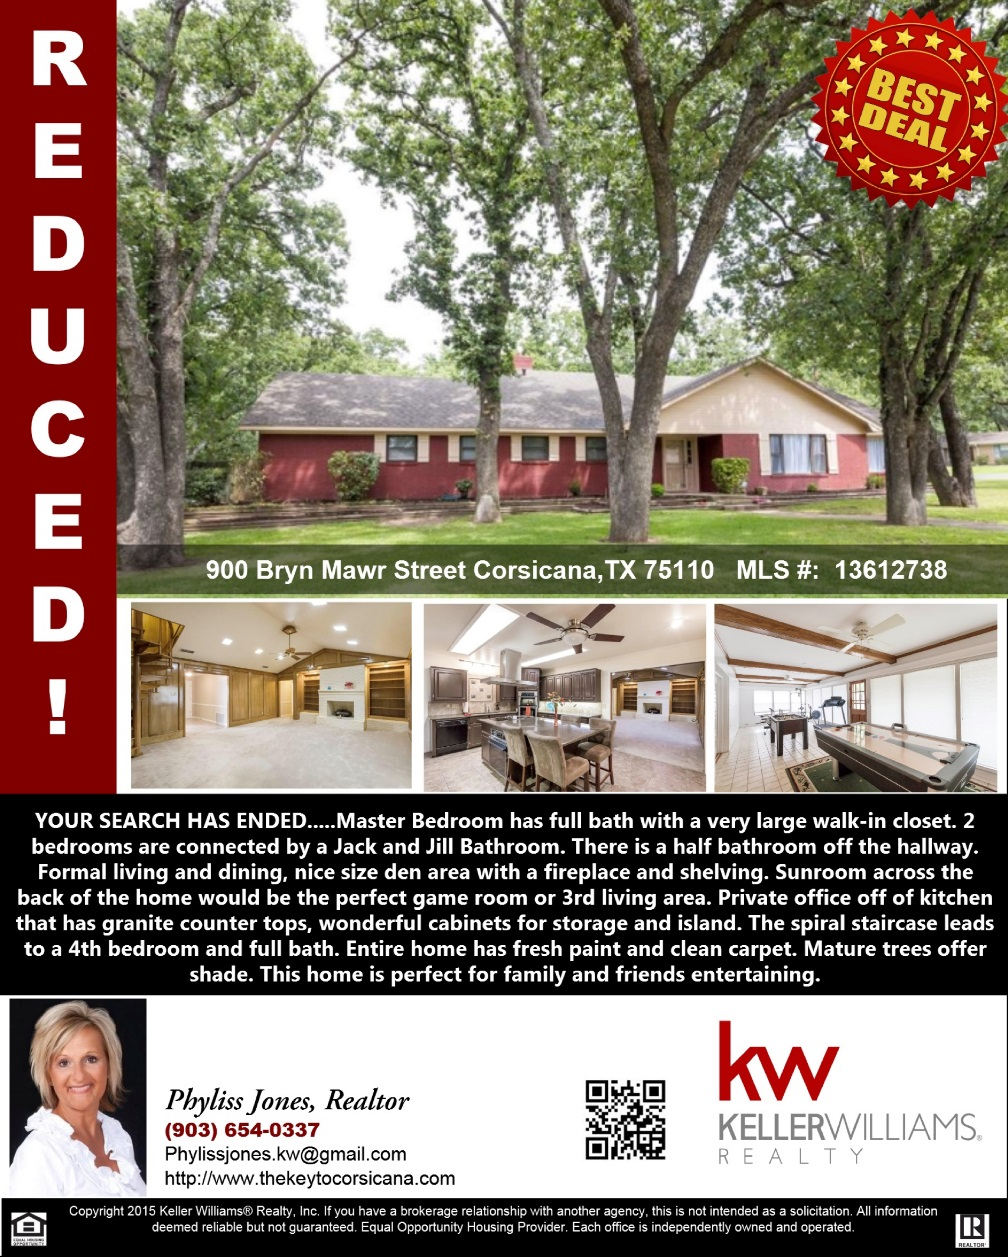 JUST REDUCED! Don't miss this Great Deal! Please call me for more info. Phyliss Jones, Realtor (903) 654-0337. #Reducedprice #Justreduced #Homeforsale #Bestdeal #KW #kellerwillimsarlington #Realestate #Corsicanahomeforsale